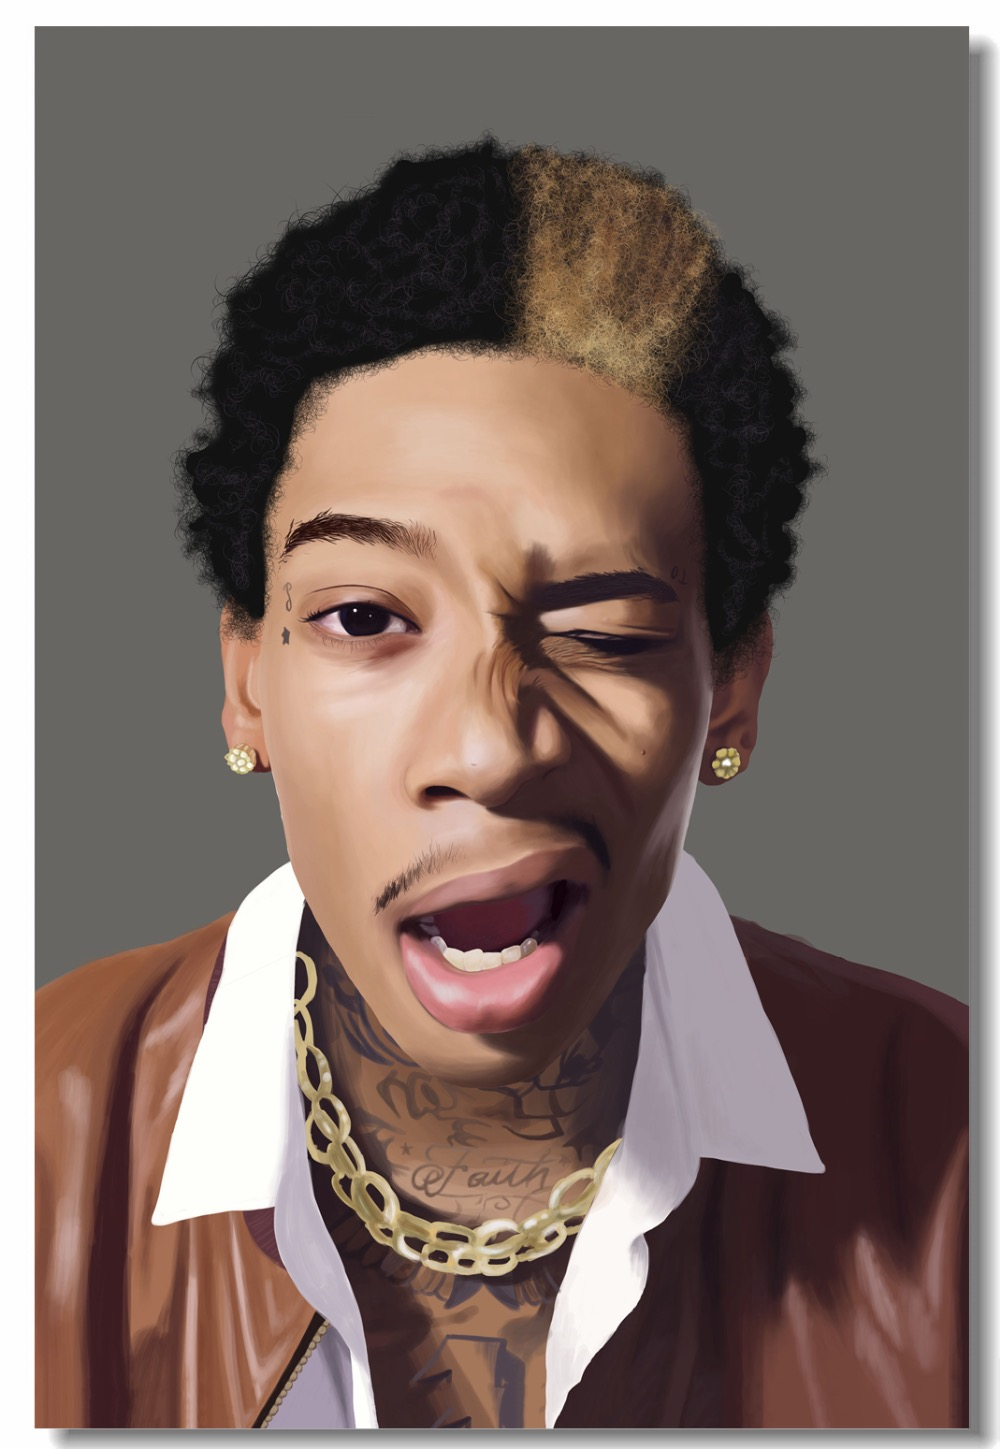 502 Wiz Khalifa Rapper Stars Art Wall Cloth Poster Print